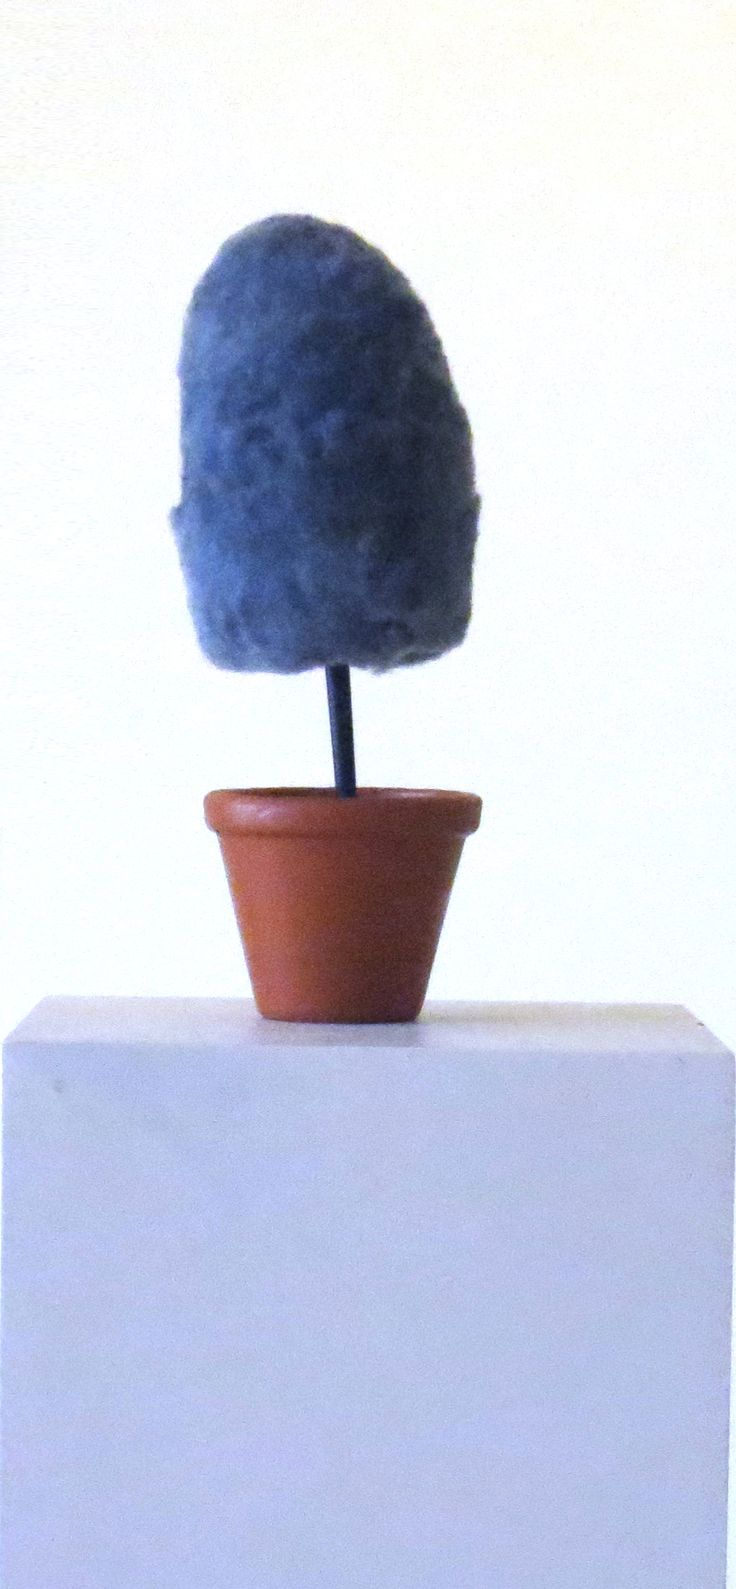 74. Kiran Shah - Untitled - dyed polyester, wood, terracotta pot, plaster, acrylic paint Price upon request.